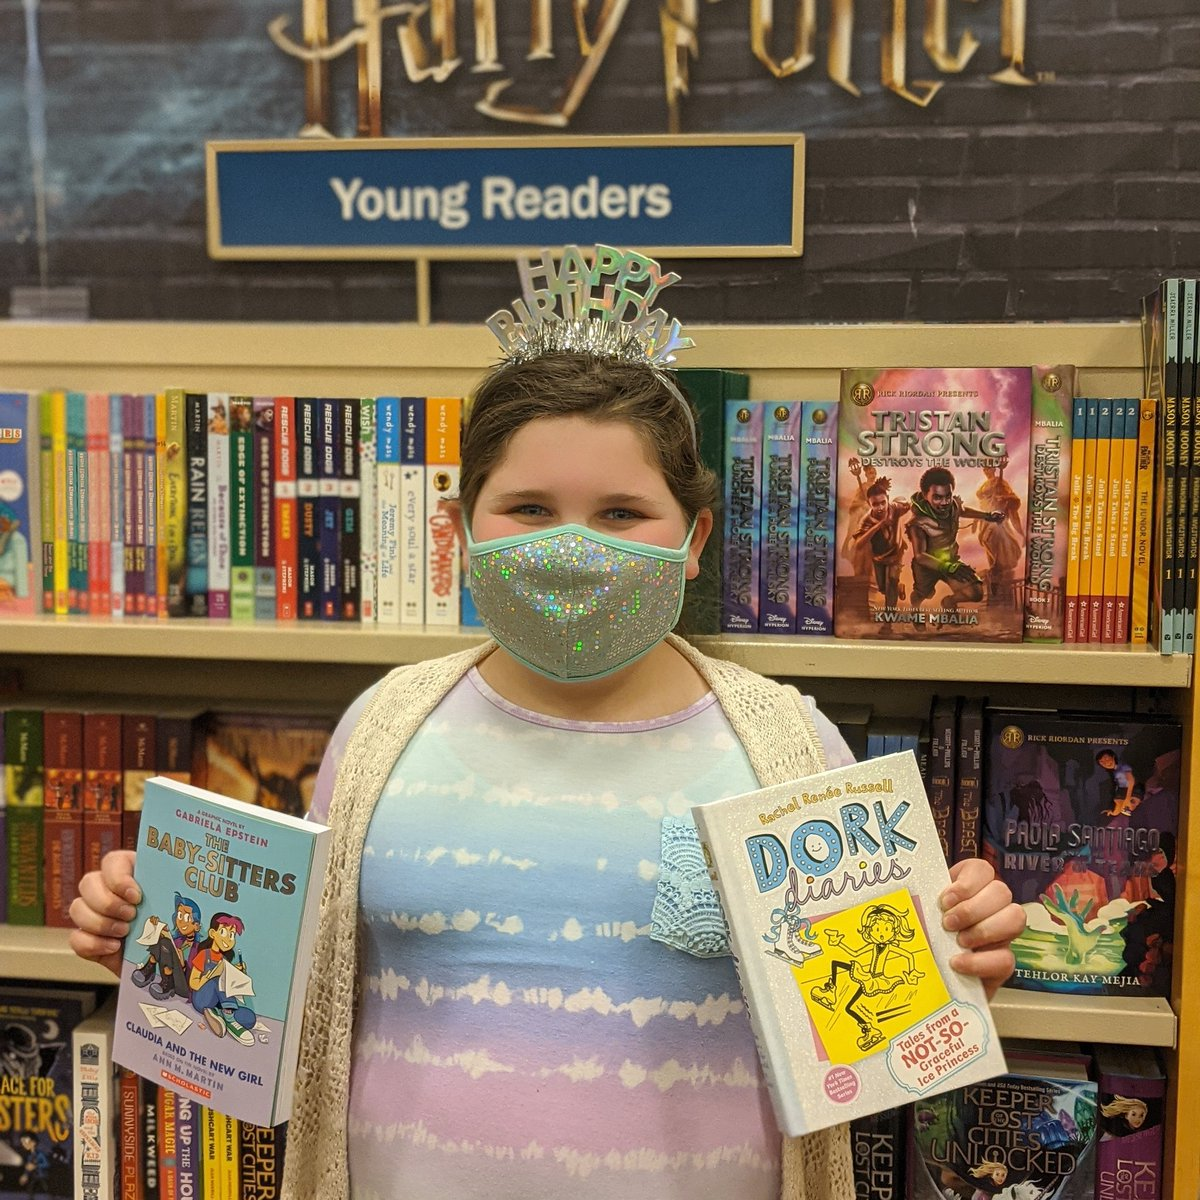 We want to wish Sira a Big Happy 9th Birthday! She came in this morning so excited to pick out her #birthdaygirl #books. They are loyal Barnes & Noble members and love #HarryPotter. #bn #bnnewhartford #bnbestyearyet  #dorkdiaries #thebabysittersclub #avidreader #makeawish